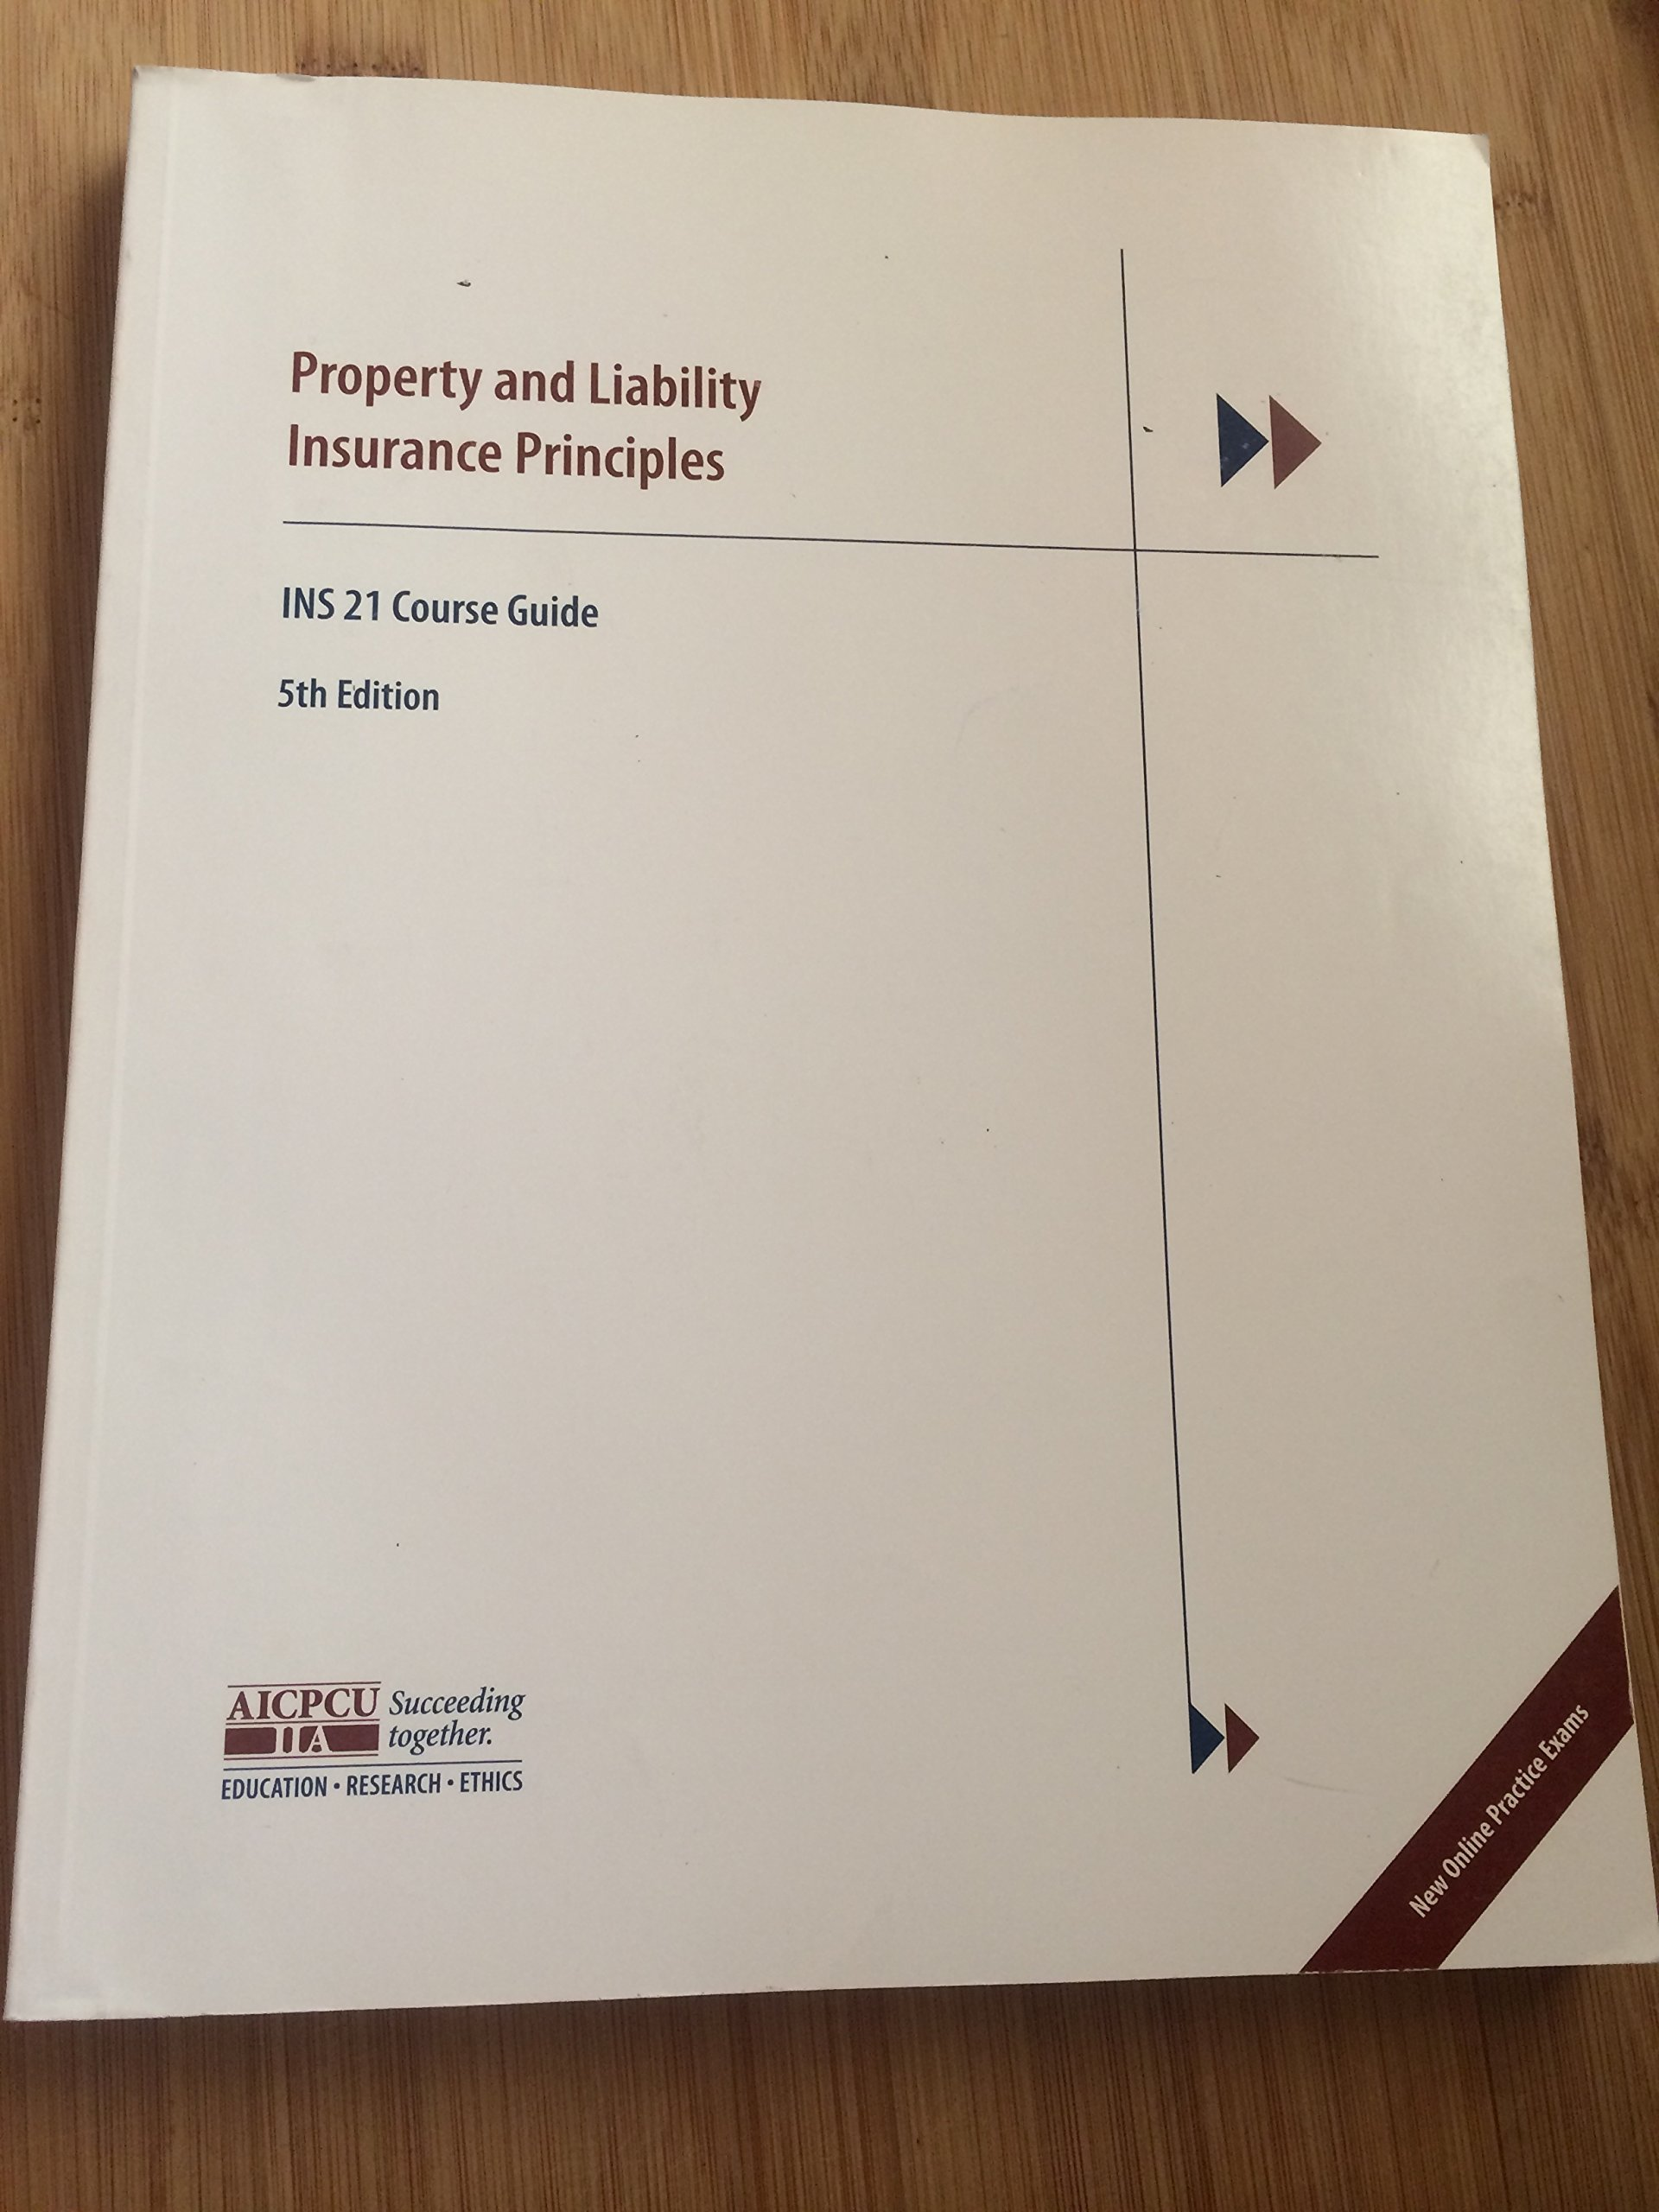 Property and liability insurance principles ins 21 course guide property and liability insurance principles ins 21 course guide aicpcu 9780894633751 amazon books xflitez Gallery